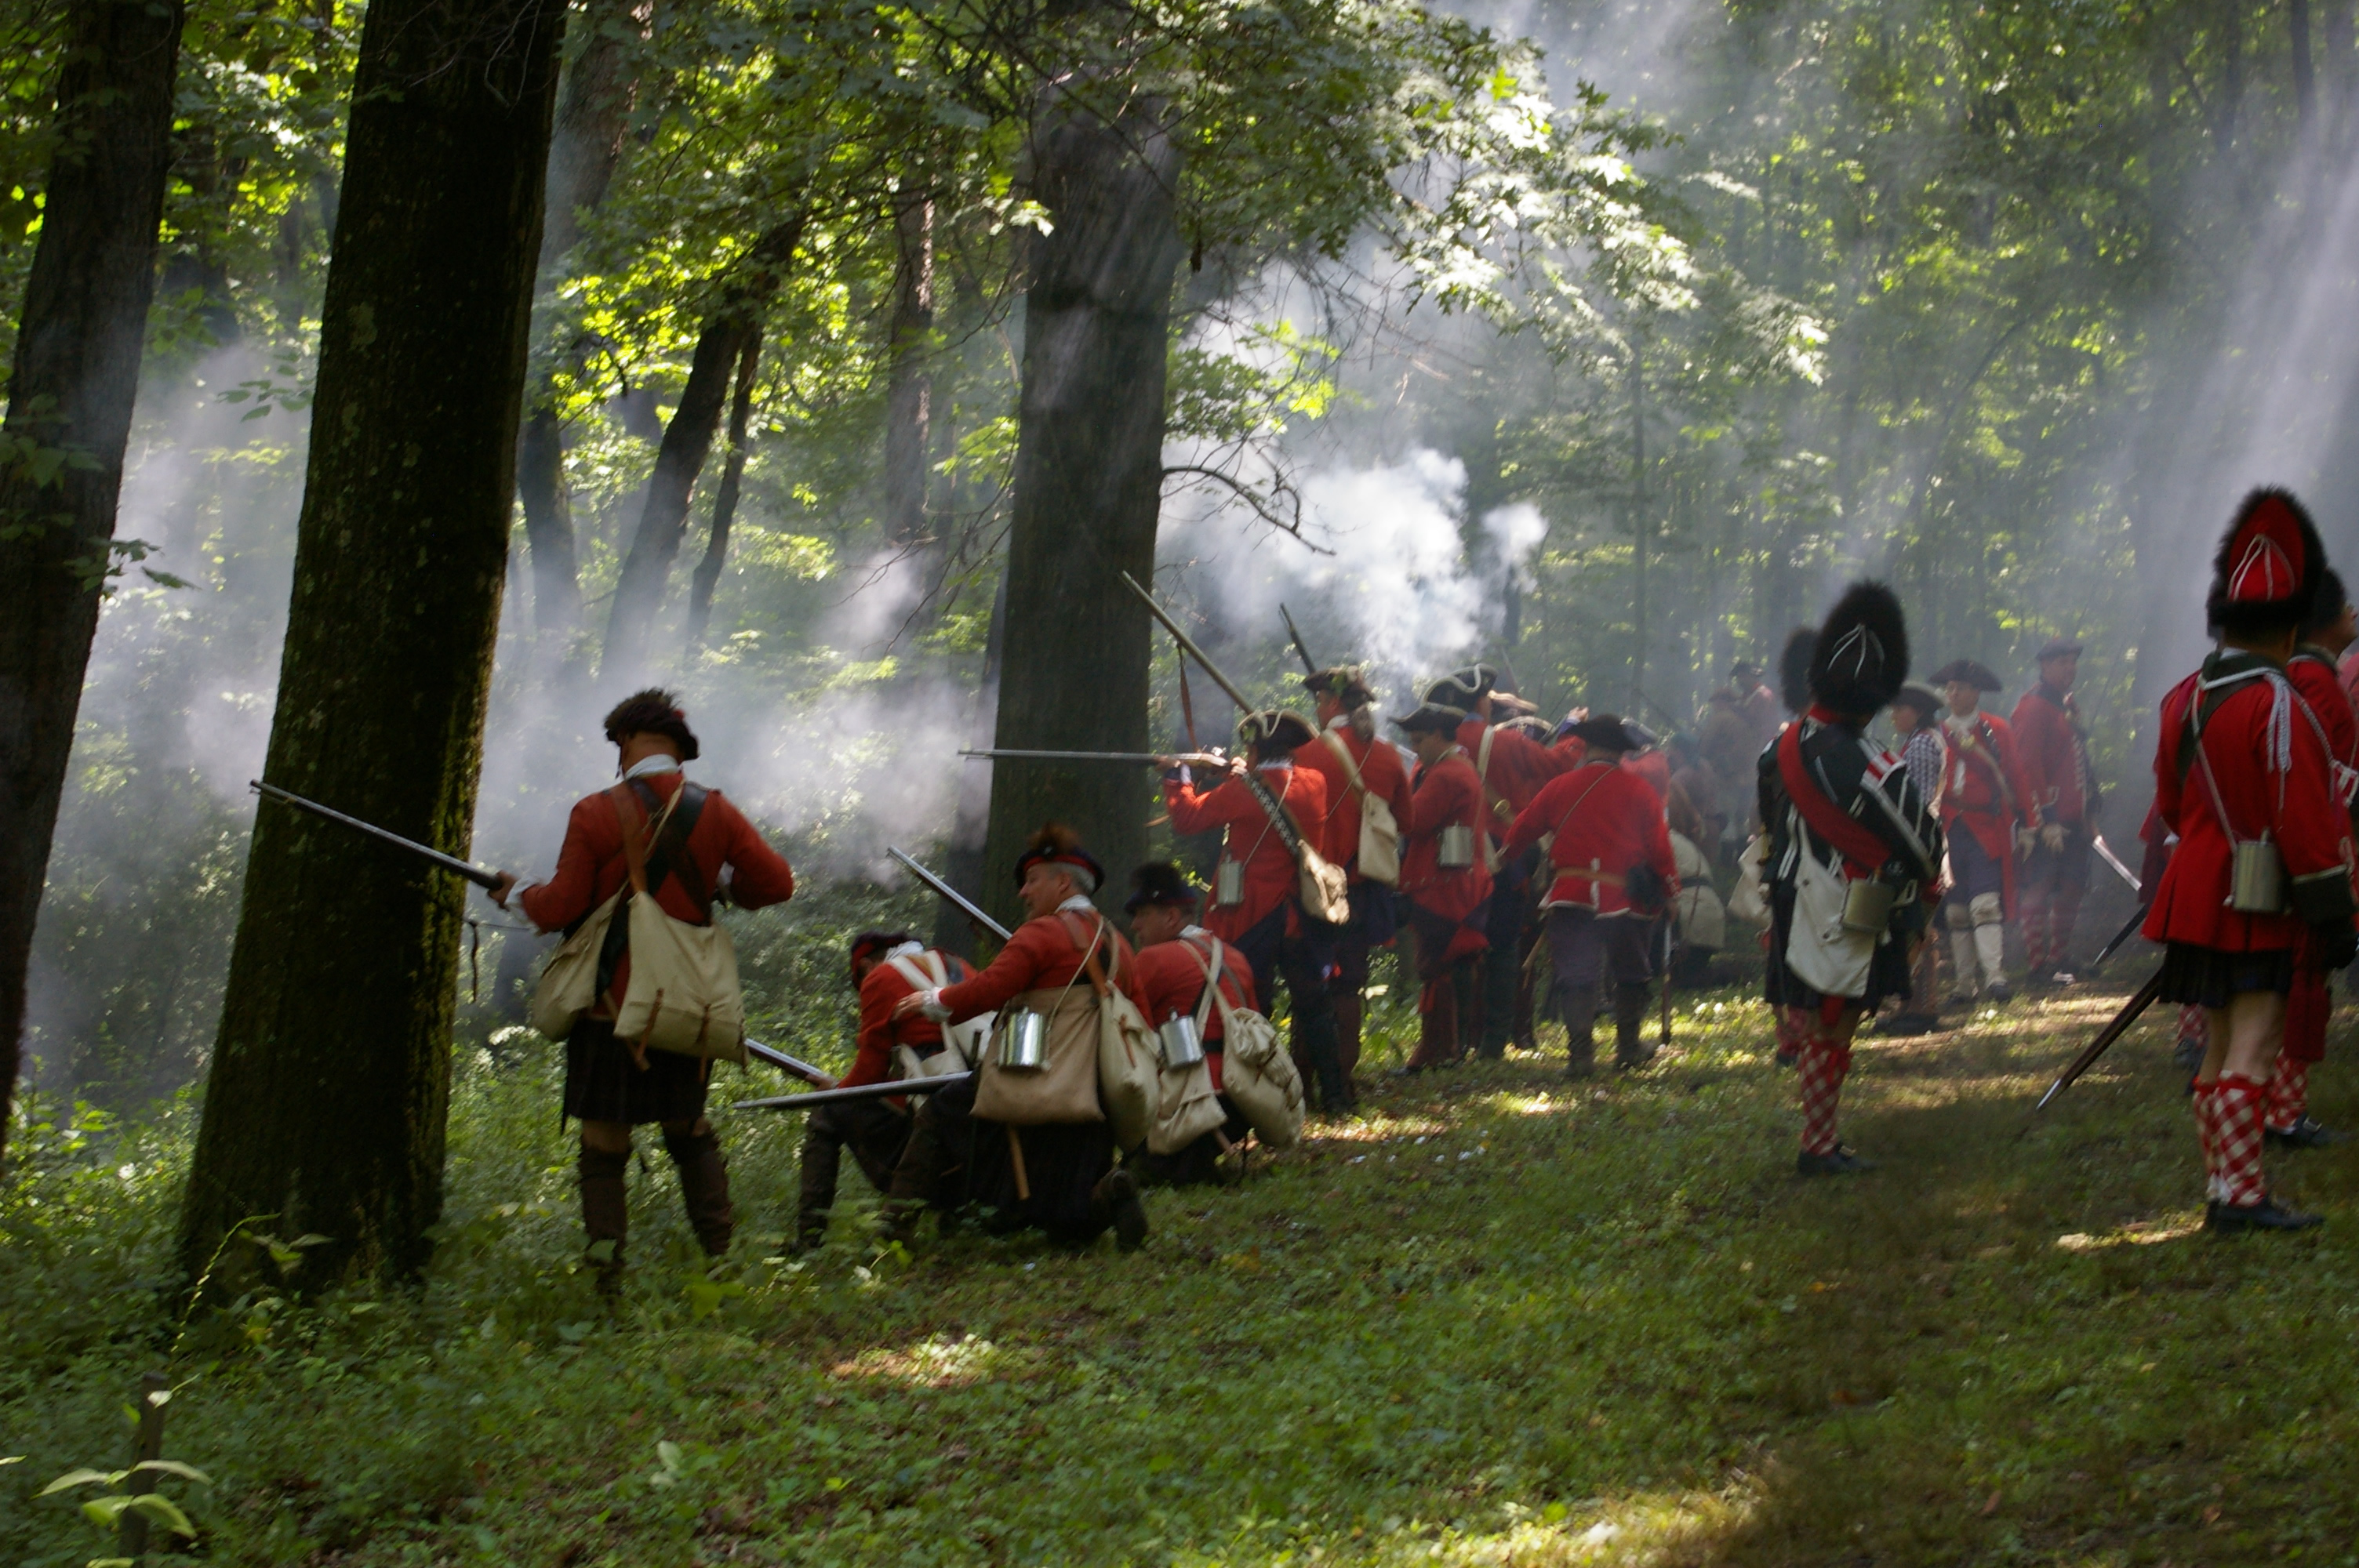 British troops firing into the woods